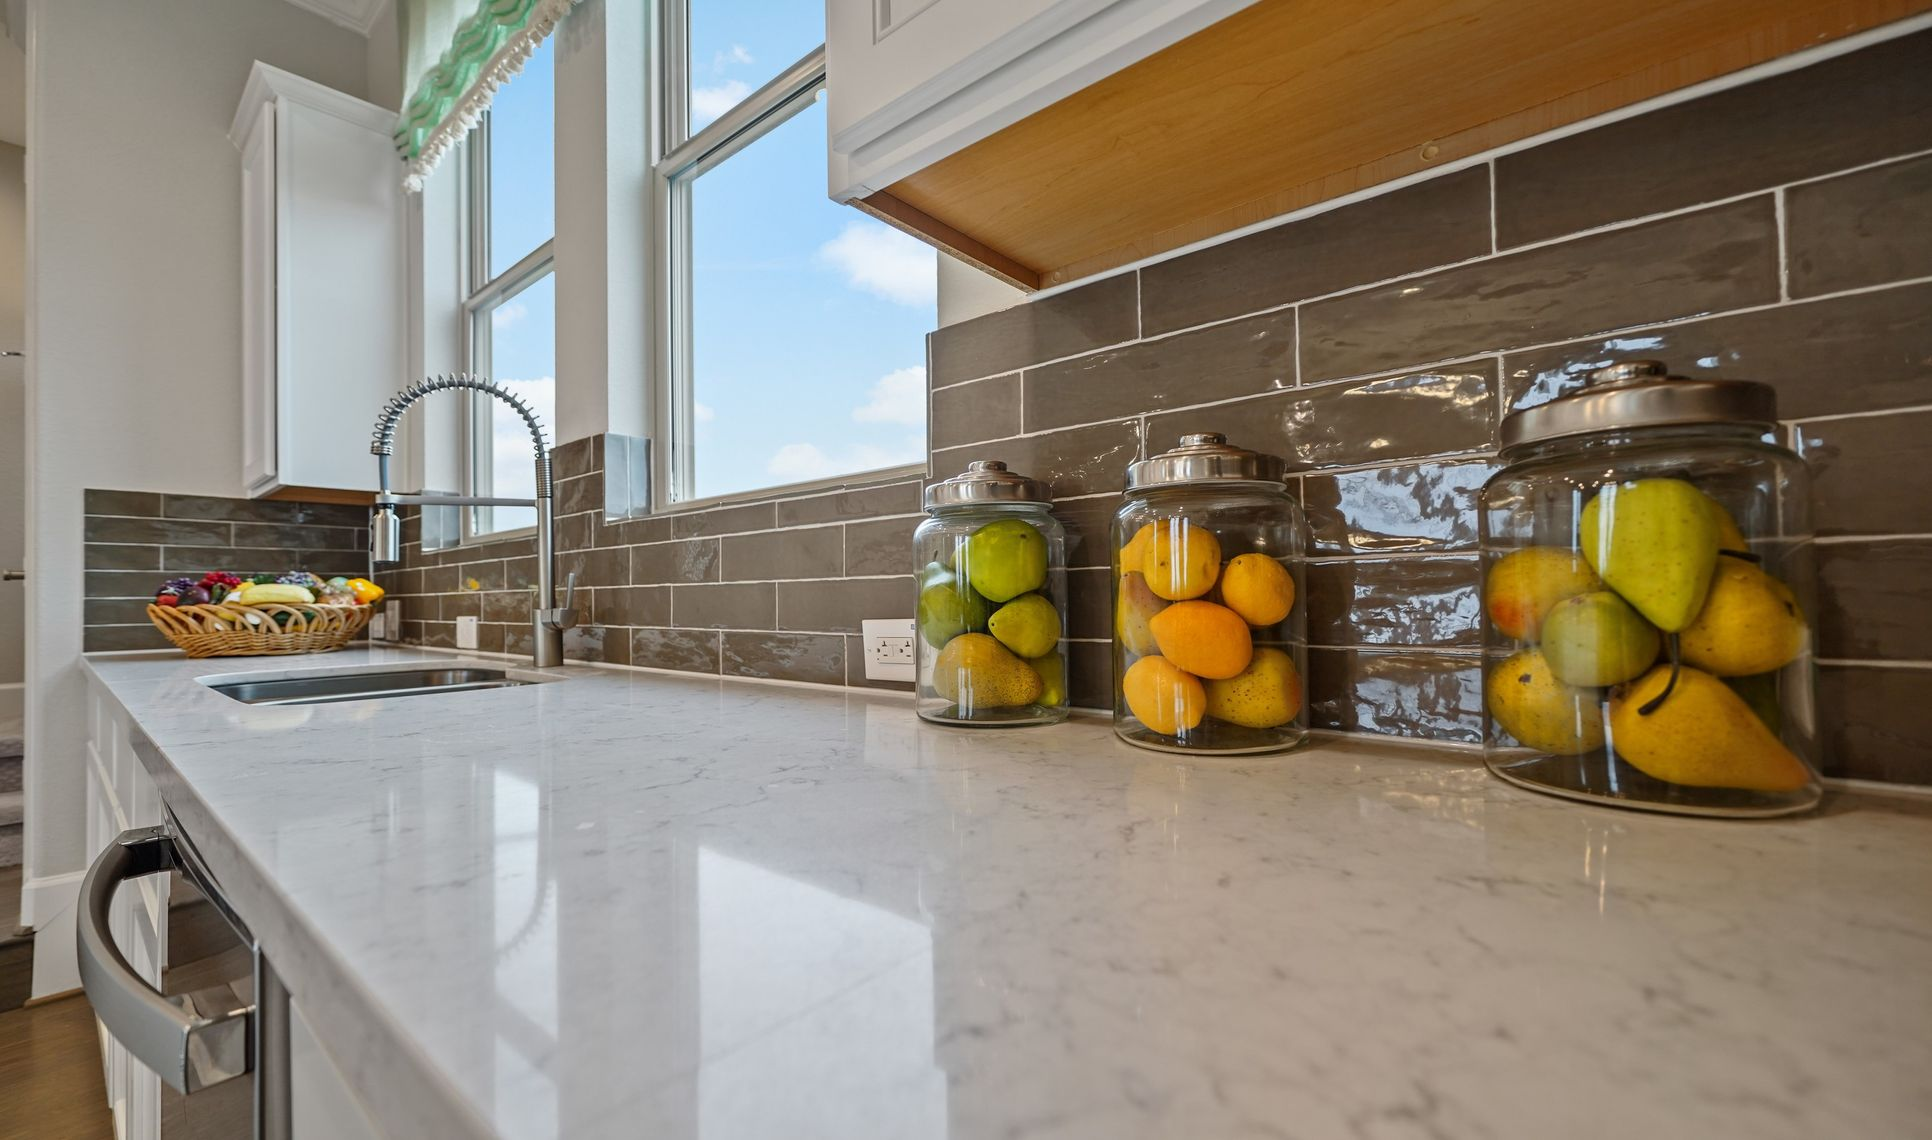 Interior:Ample counter space in kitchen